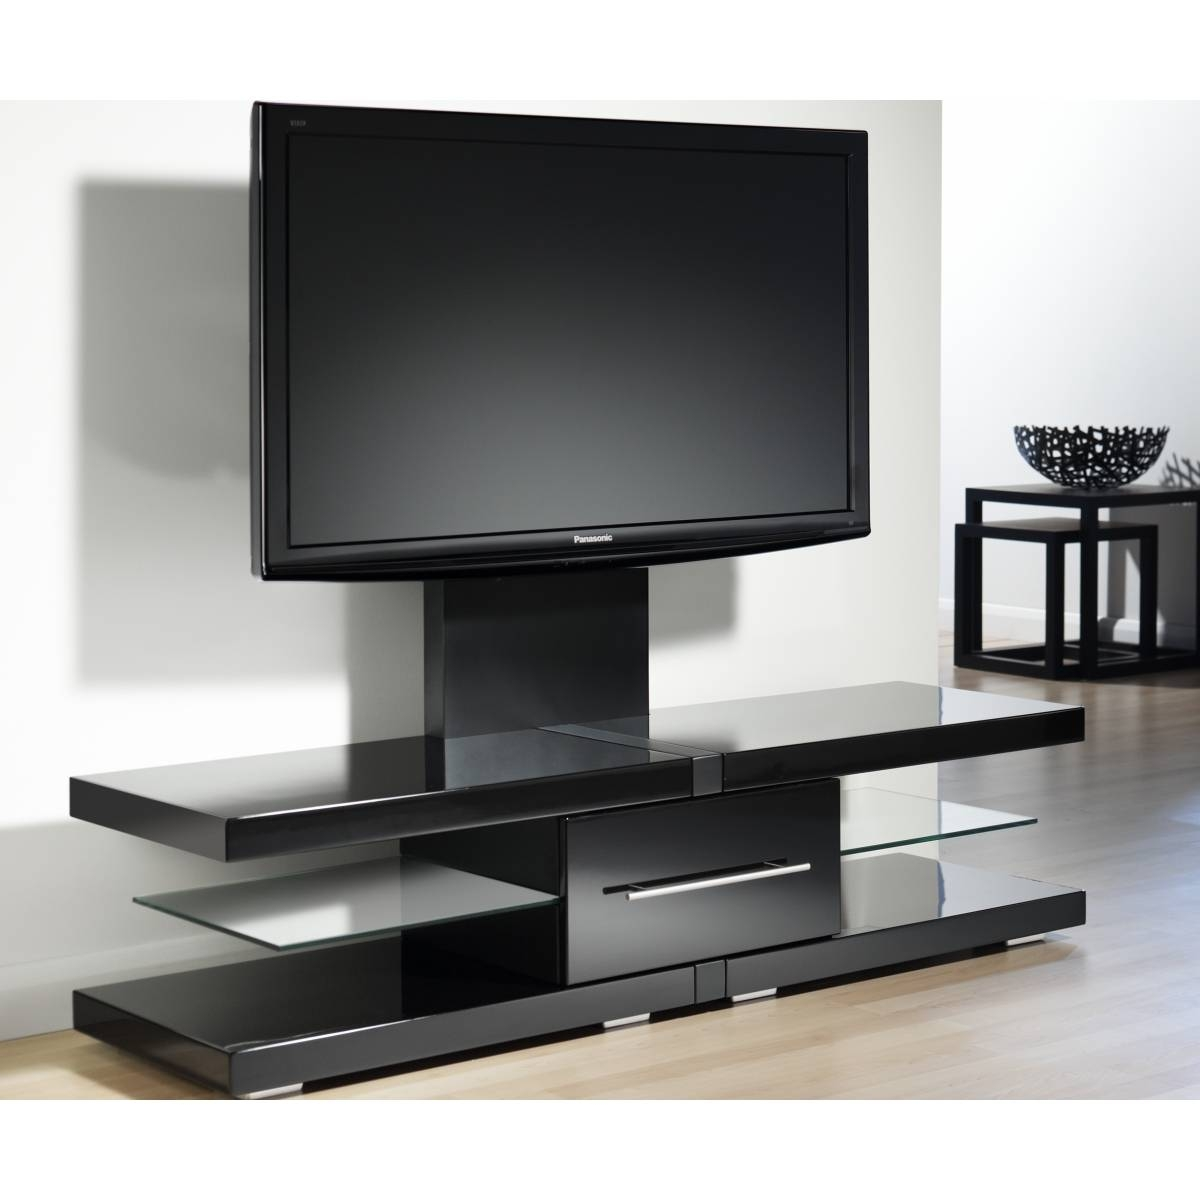 Modern Glossy Black Flat Screen Tv Stand With Mount And Glass for Contemporary Tv Stands for Flat Screens (Image 6 of 15)